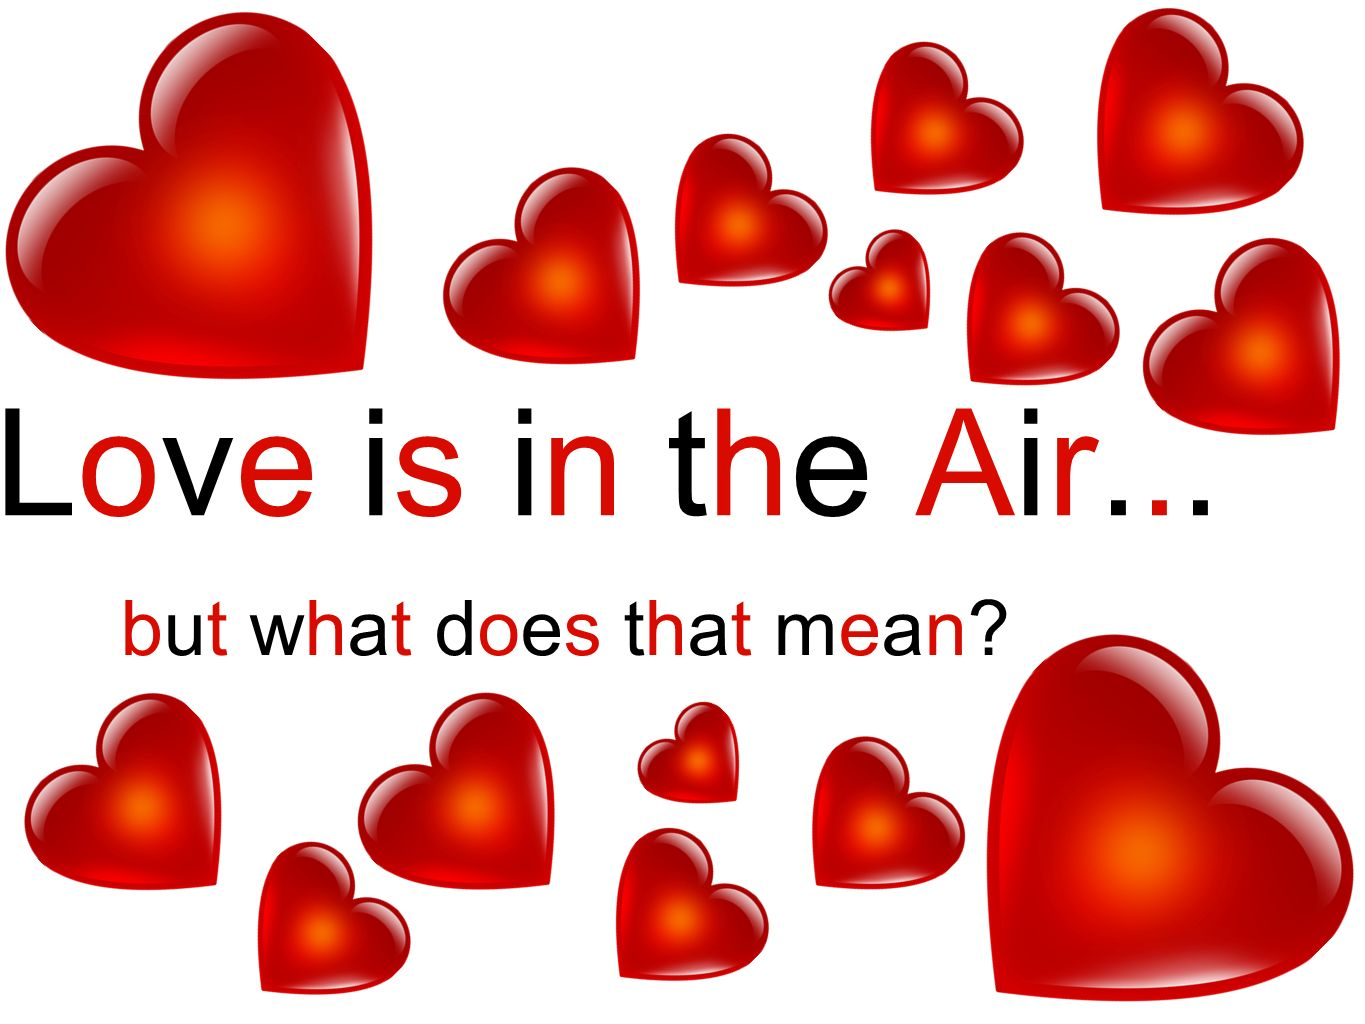 Love is in the Air... but what does that mean?